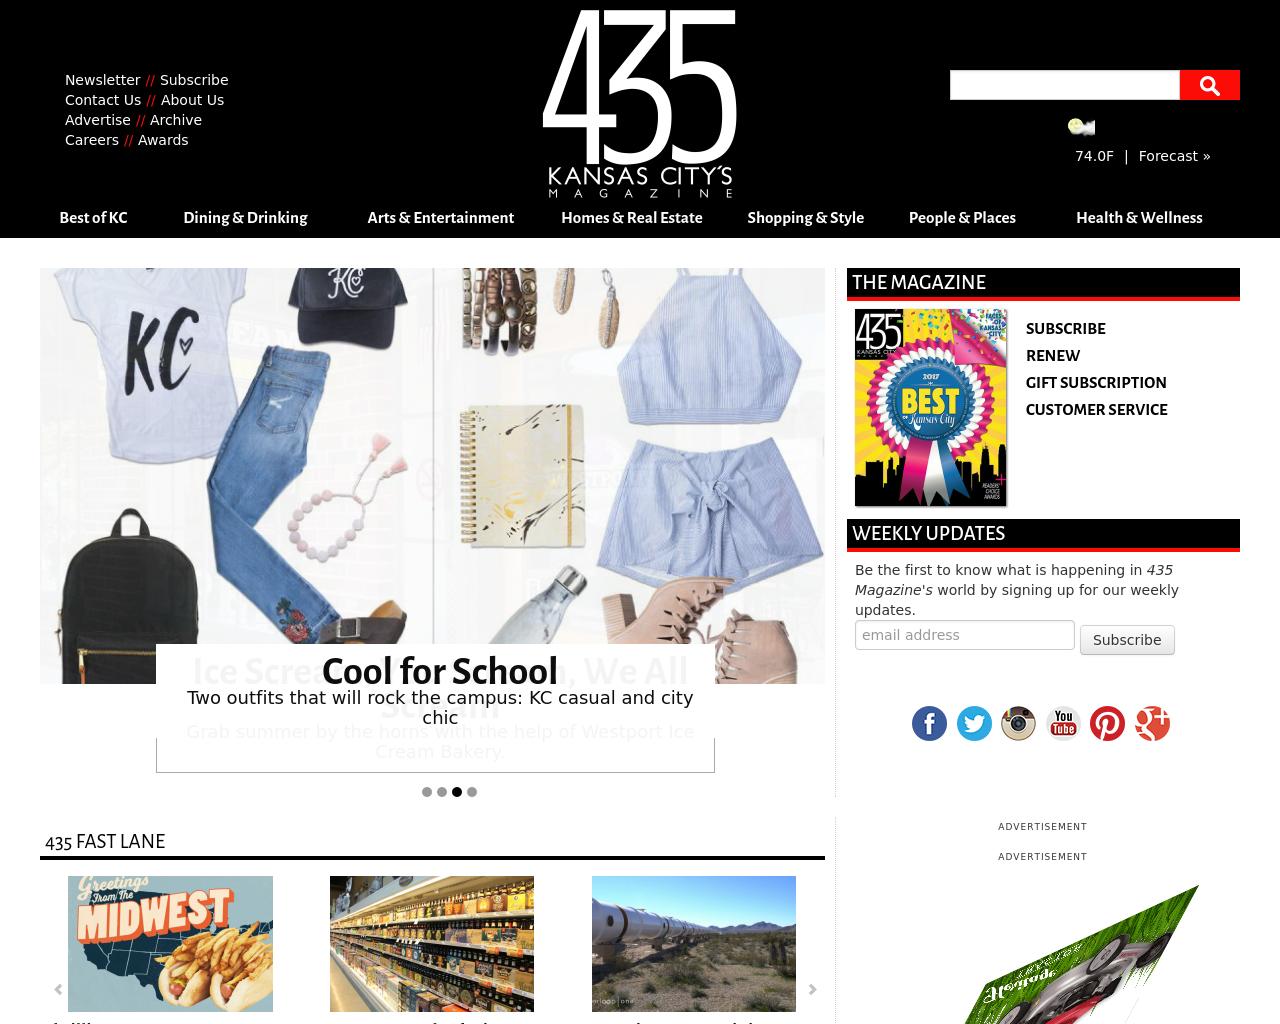 435-Magazine-Advertising-Reviews-Pricing